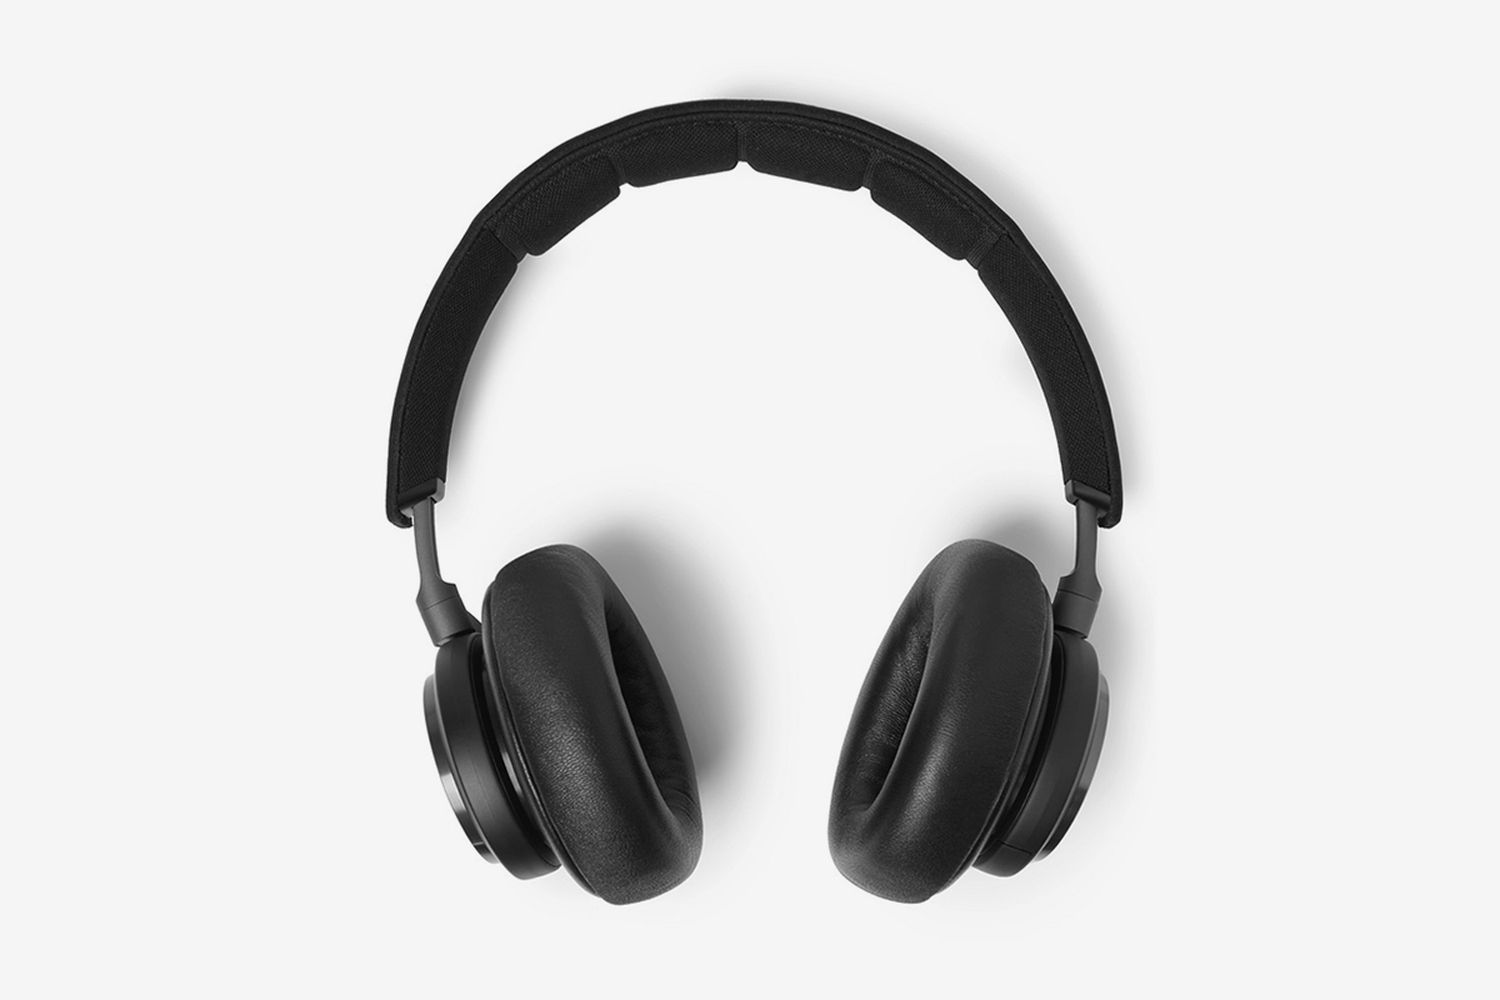 H7 Wireless Headphones